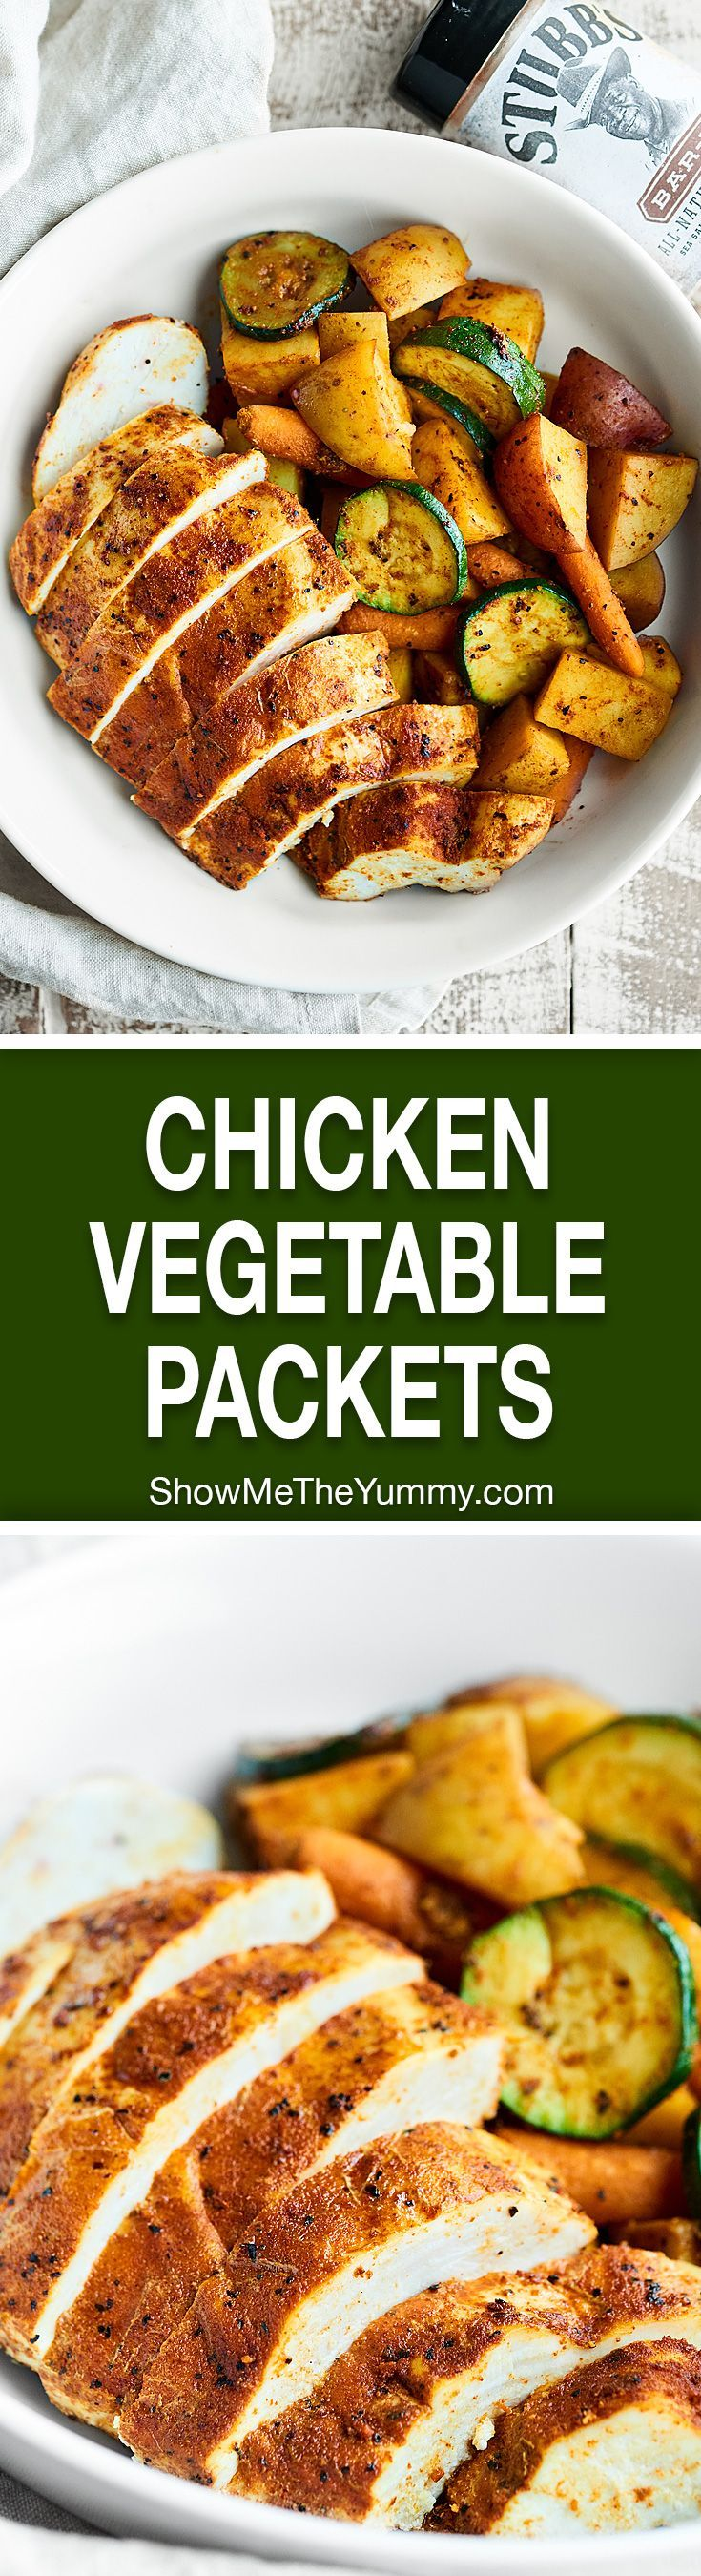 Chicken and vegetable foil packets recipe bbq chicken for Chicken and vegetables in foil packets recipe